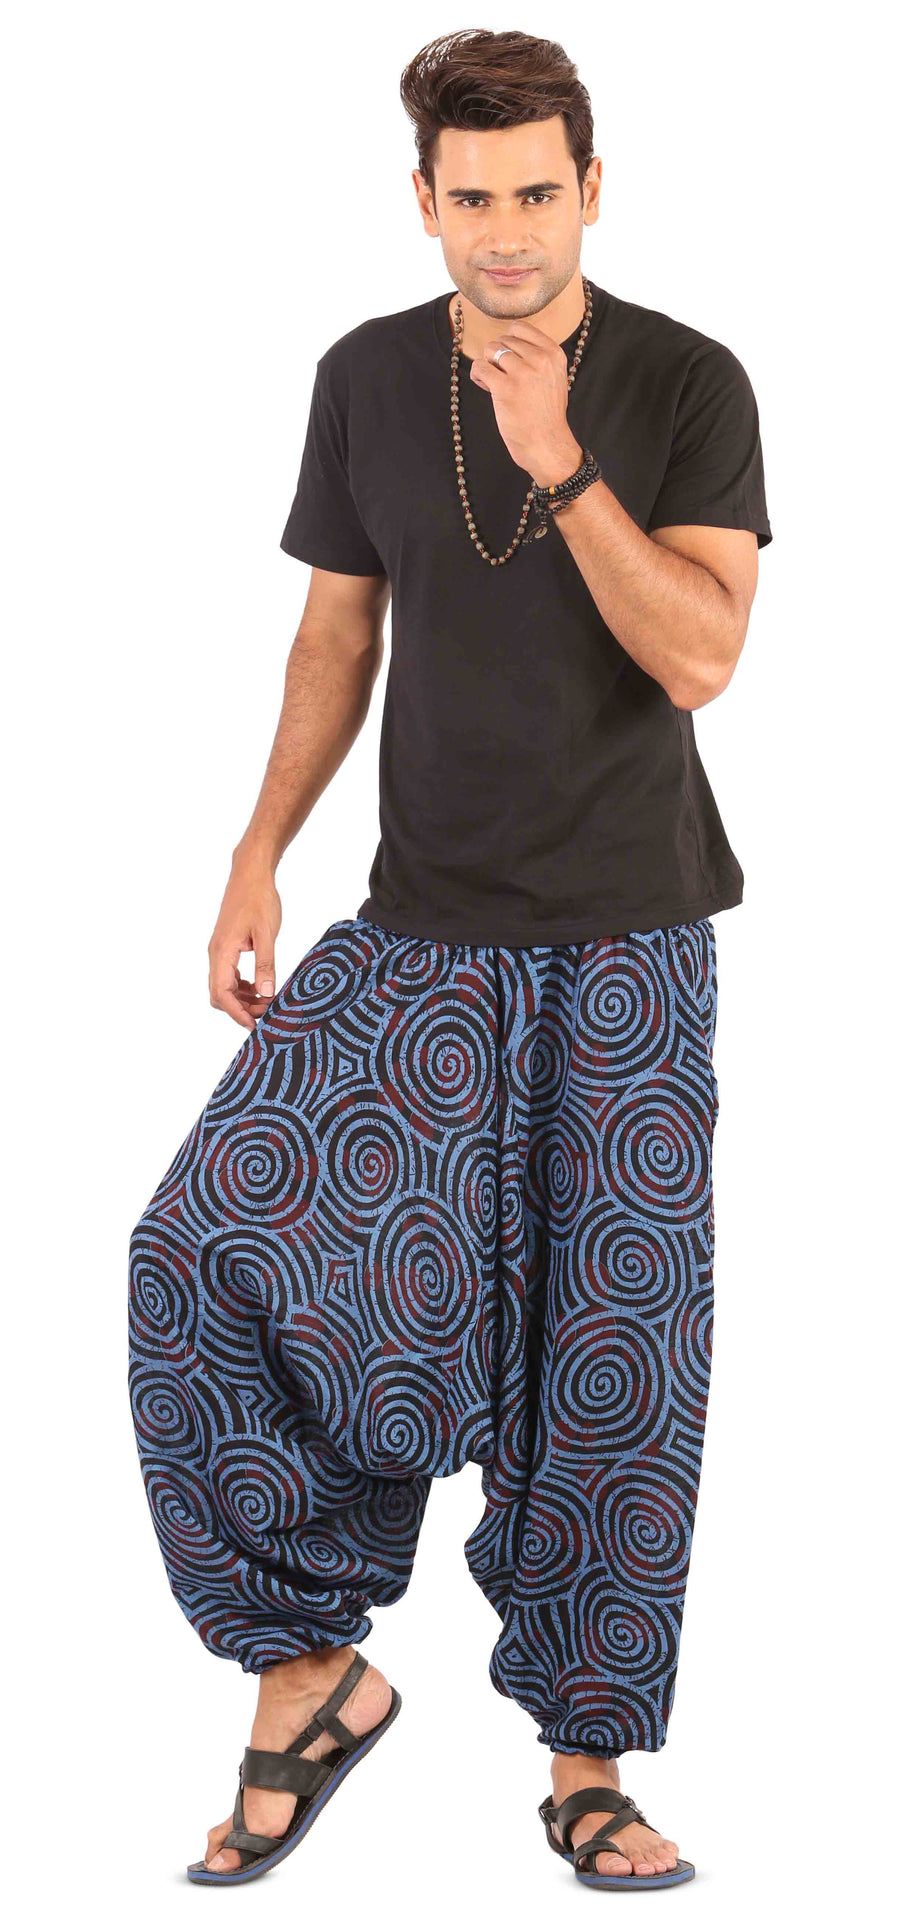 Harem Pants, Blue Harem Pants, Wide Leg Pants, Show me Hippie Pants, Show me some Mens Harem Pants, Show me some Womens Harem Pants, What is a harem pant, Show me some baggy pants, I want to buy harem pants, cool harem pants, Wide leg harem Pants, Cheap Harem Pants, Show me best harem pants, Highly rated Harem Pants